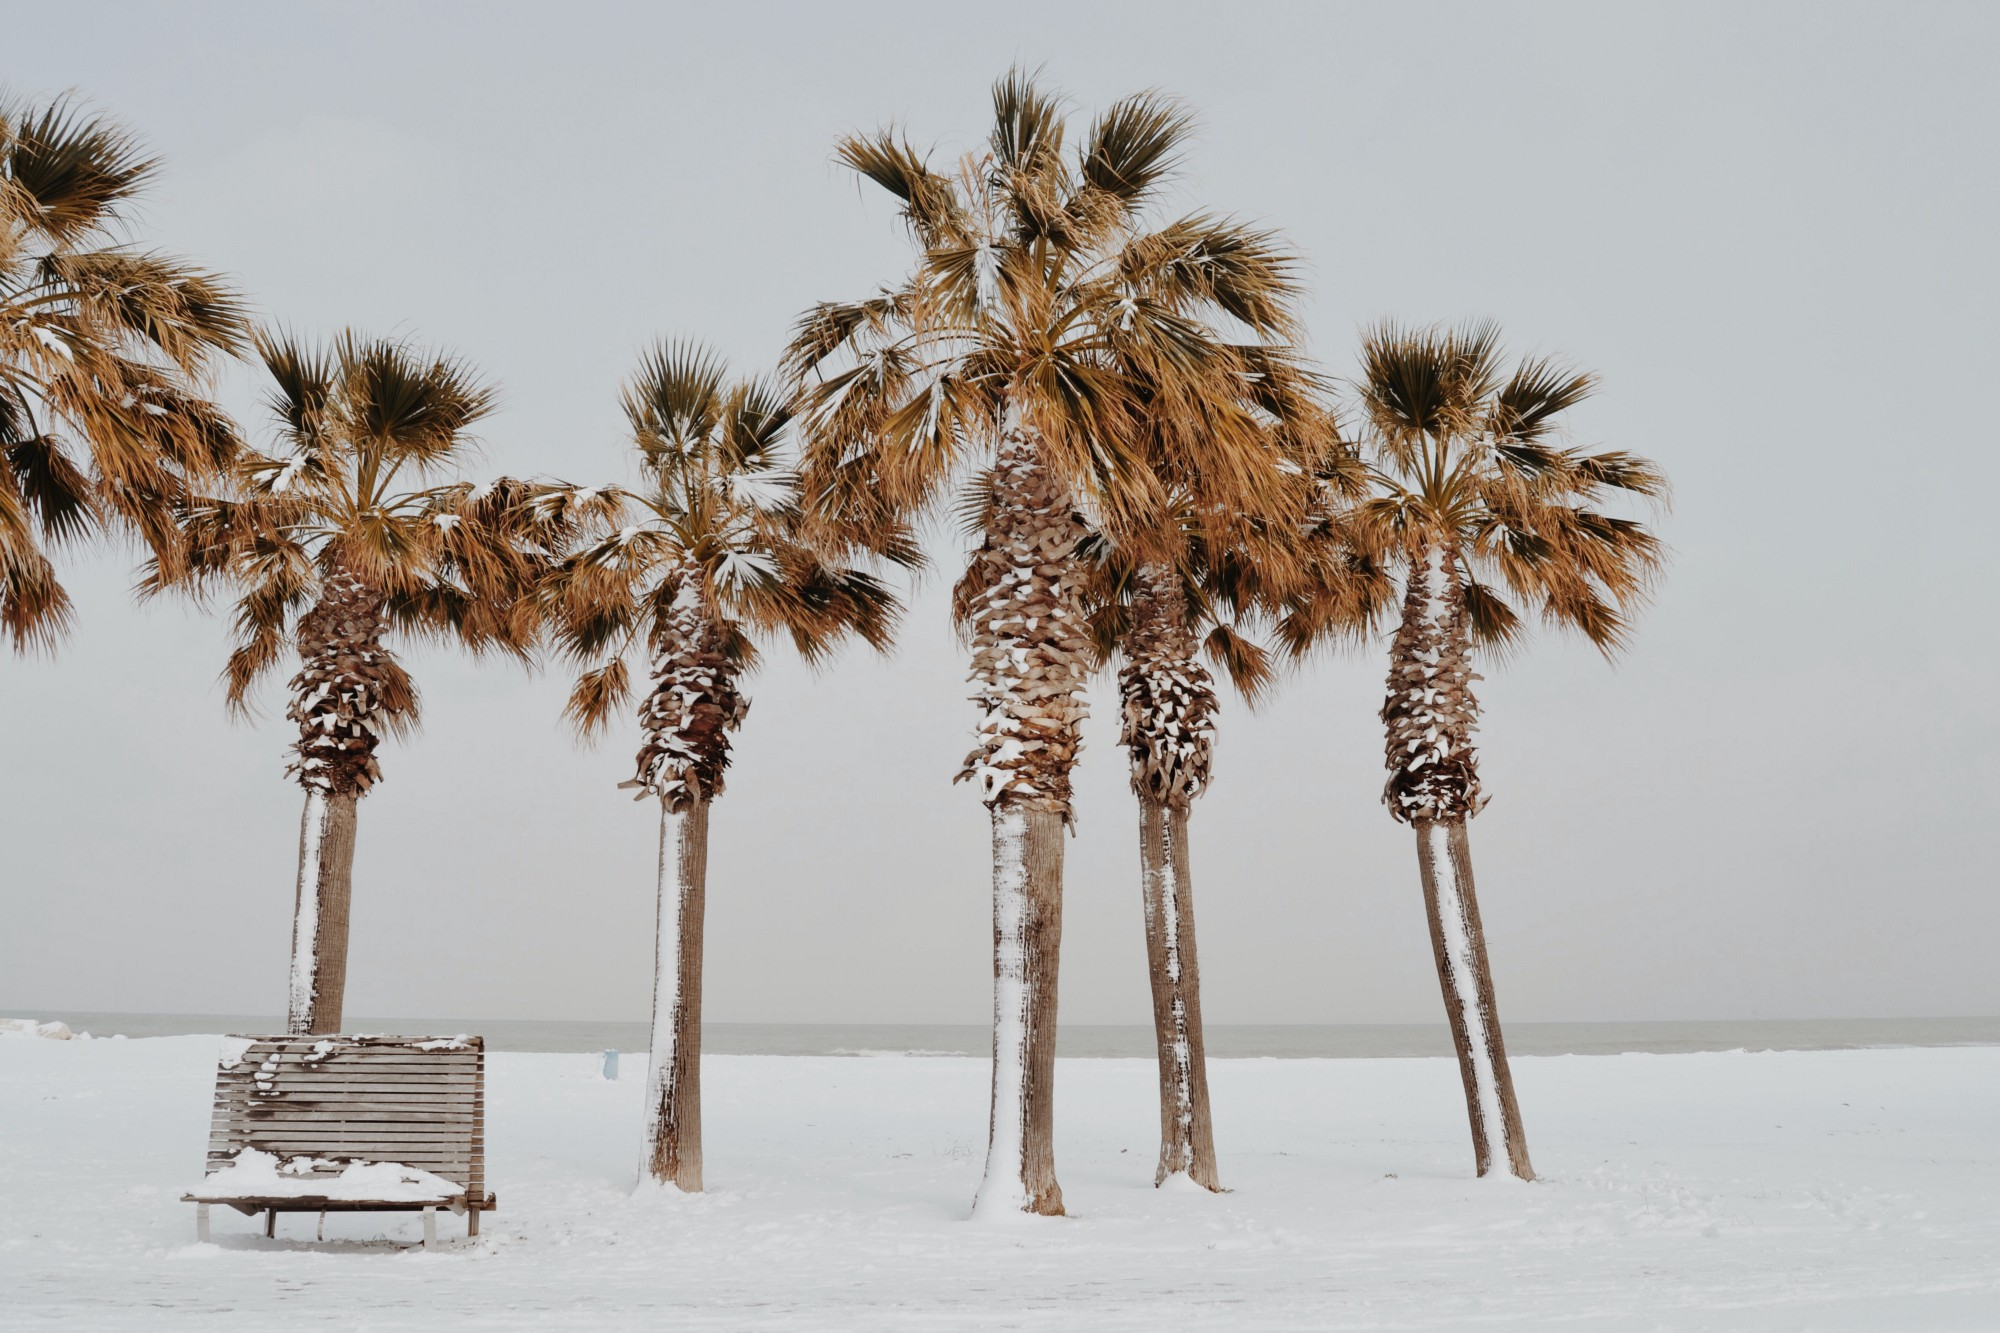 A bench under a stand of palm trees with snow covering the ground and deposited on bench and trees.